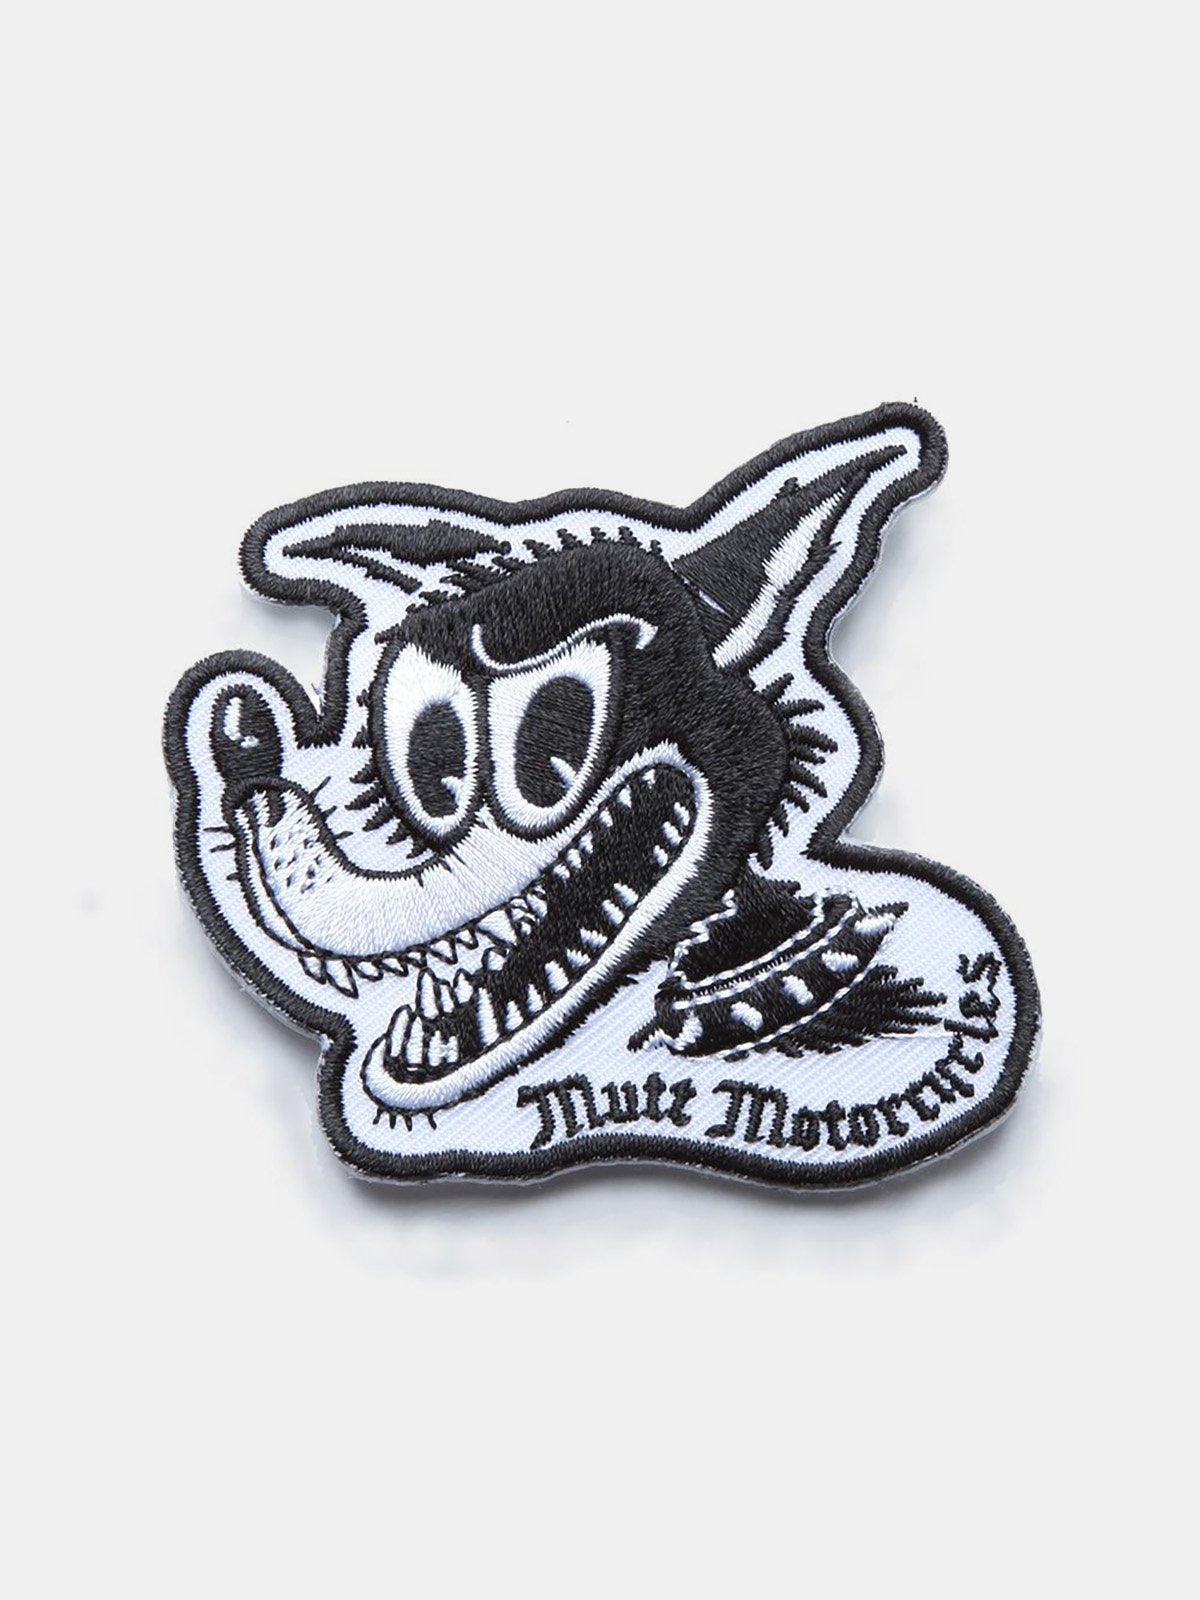 Pins & Patches - Mutt Hound Patch - No Colour